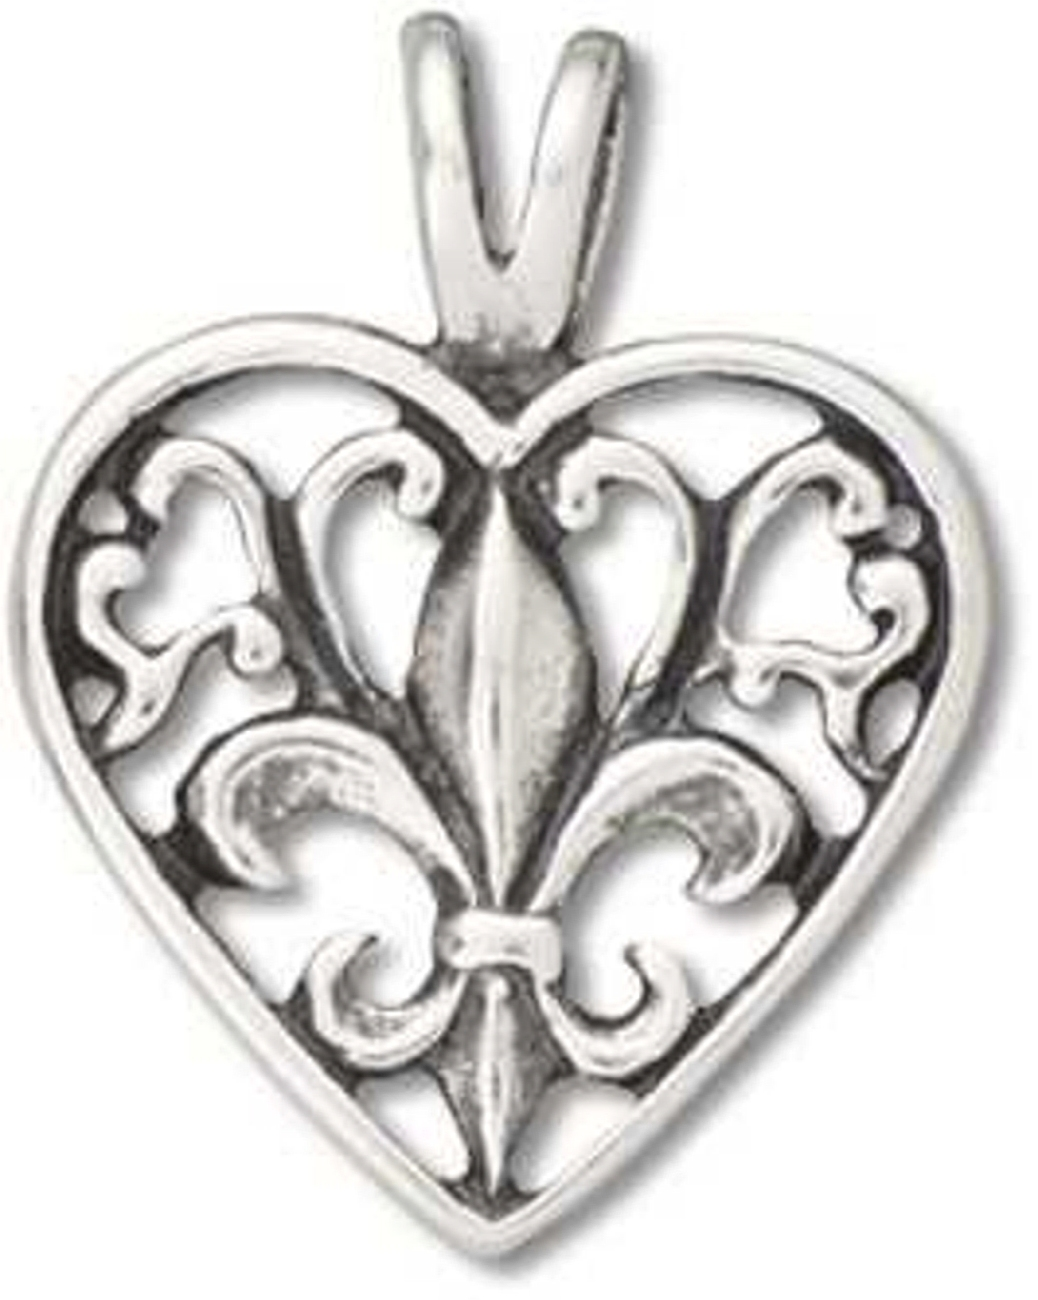 French Heritage Scrolled Heart With Fleur De Lis Pendant